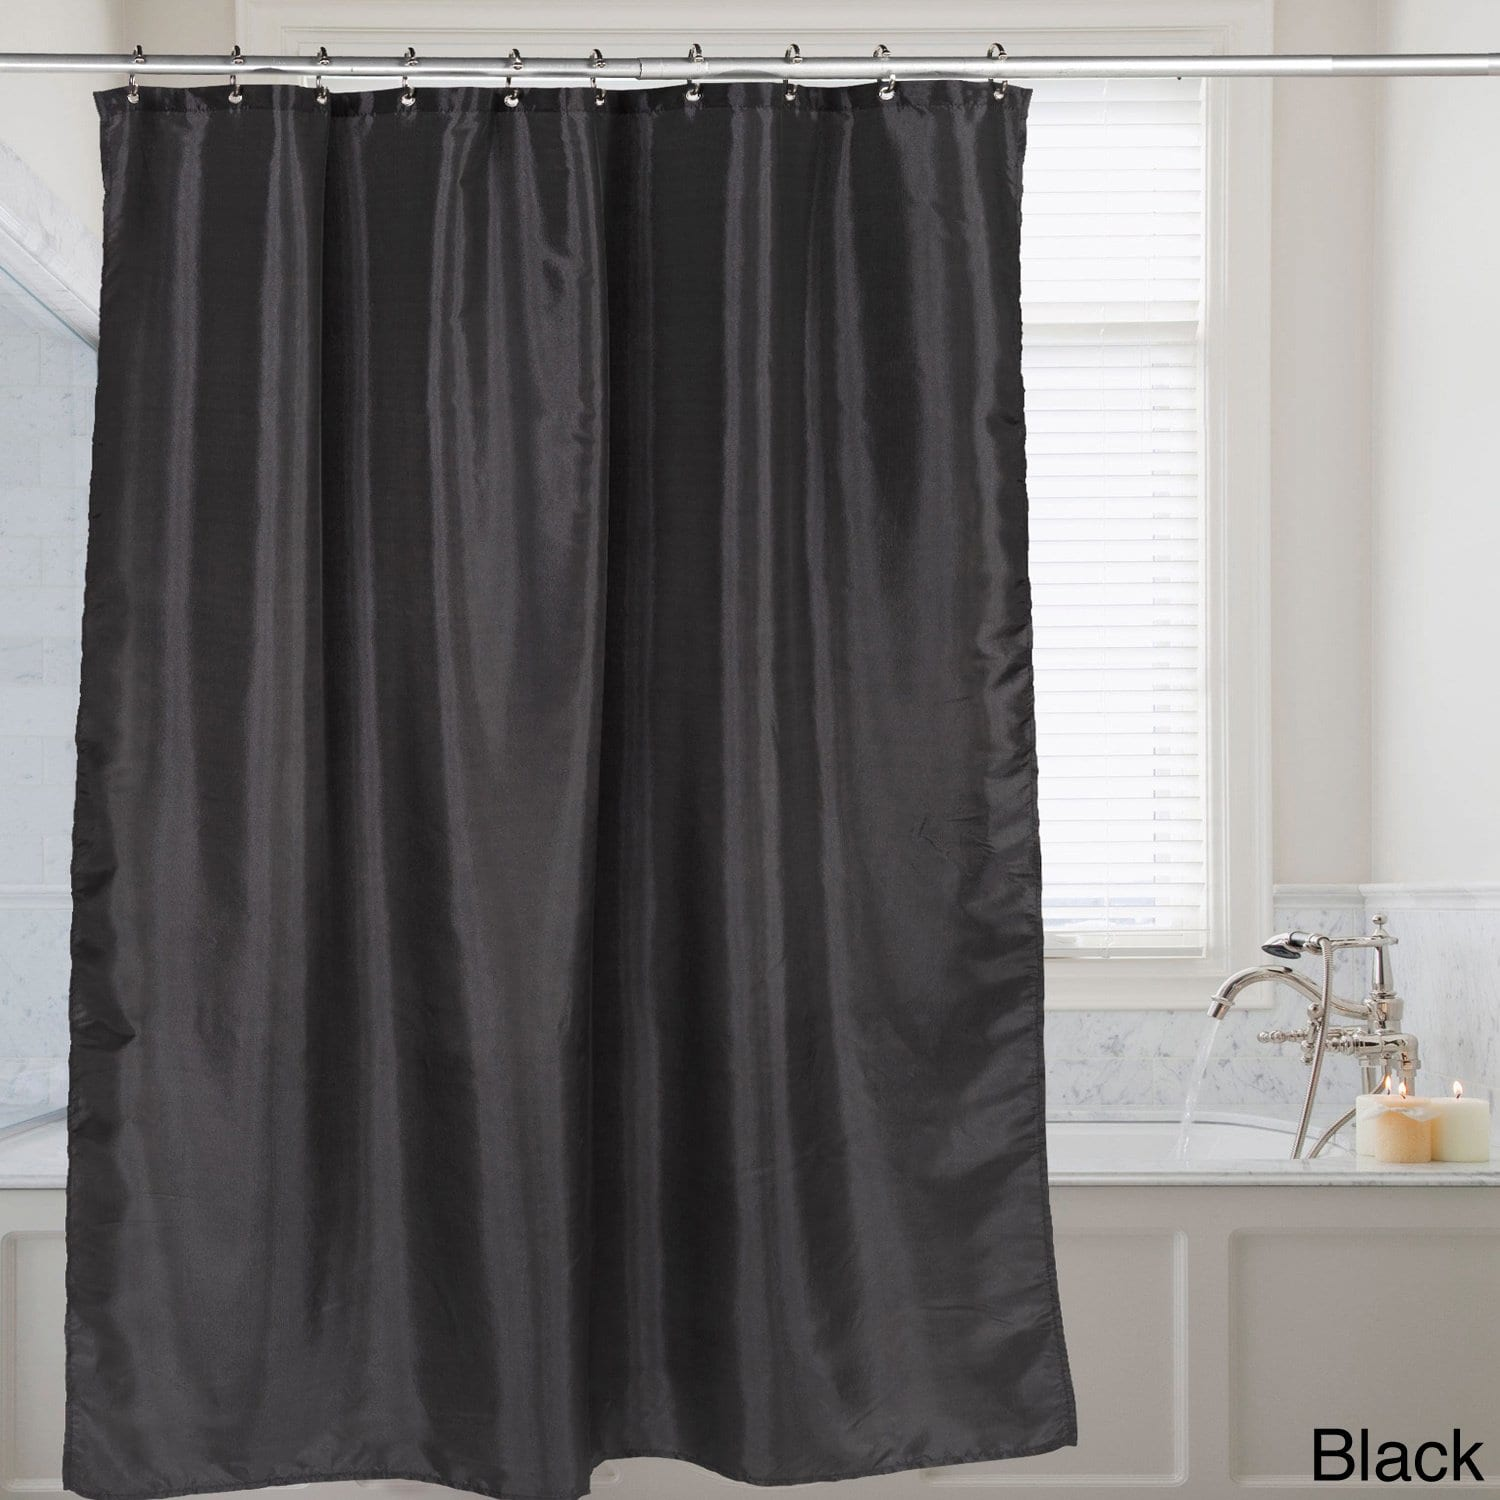 bed bath n more Faux Silk Shower Curtain 70x72 Assorted Colors